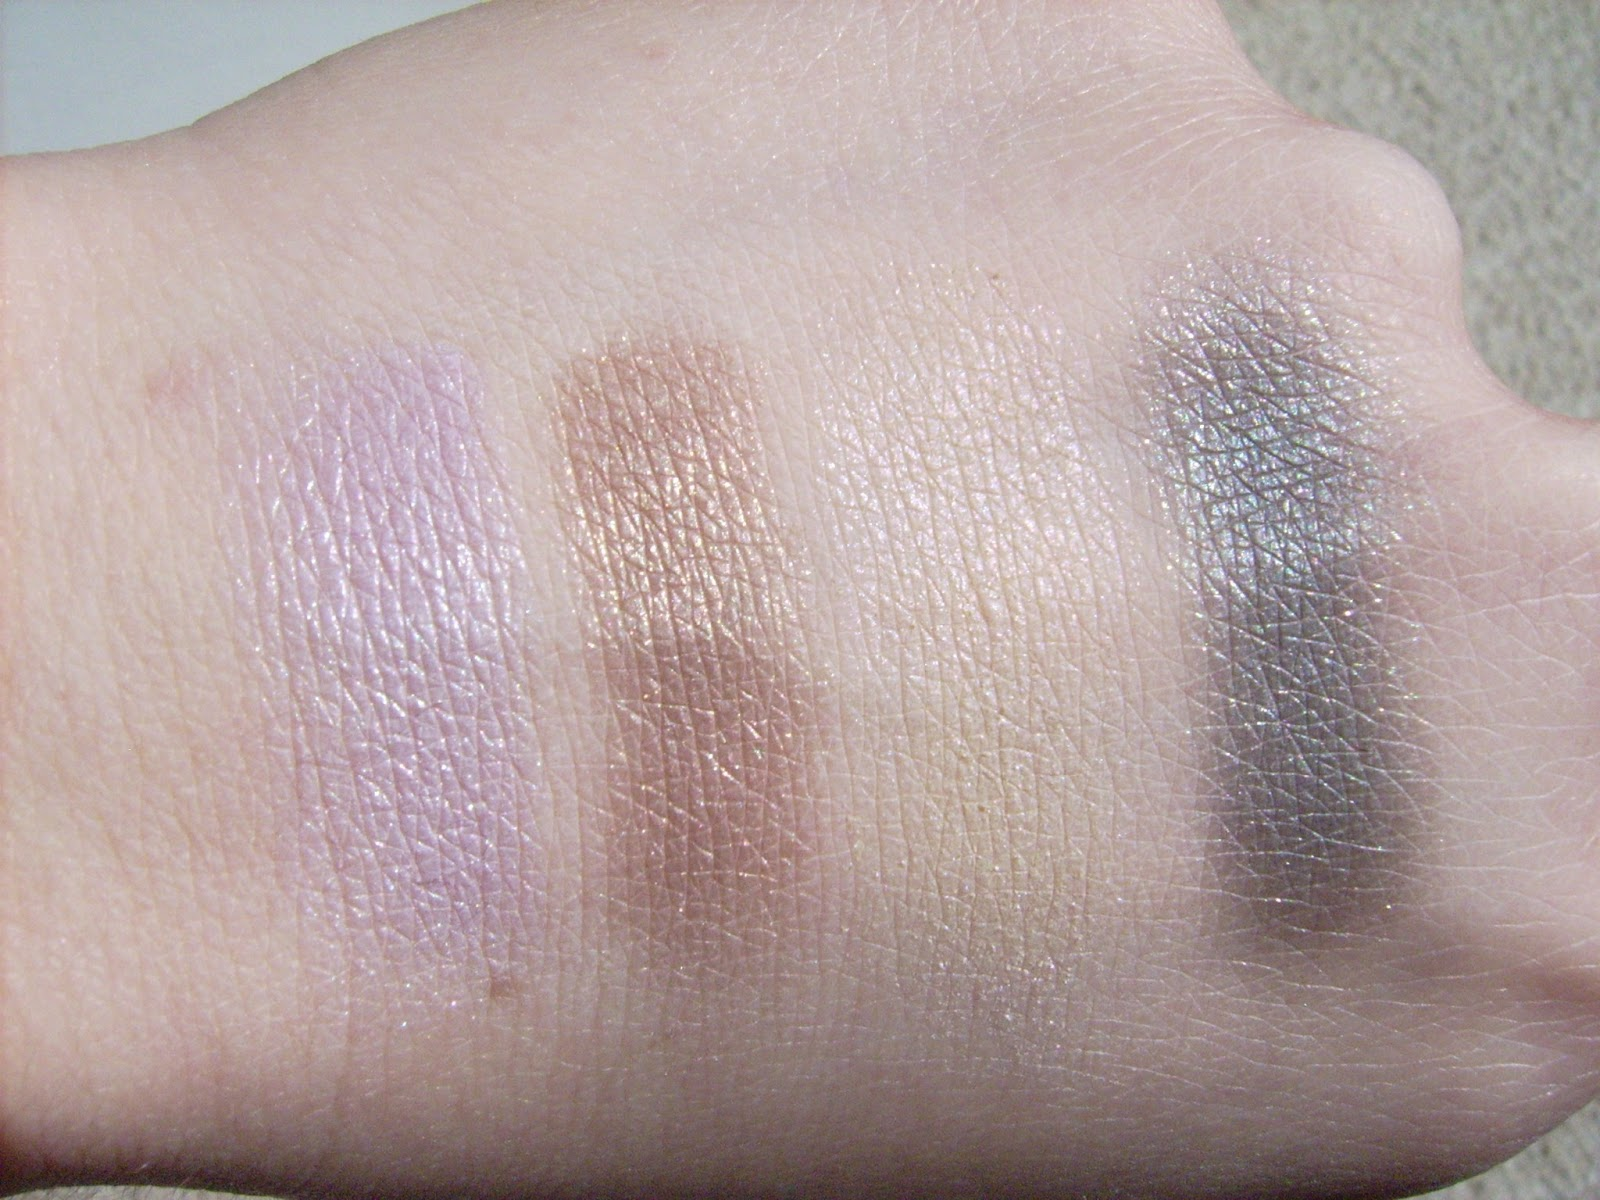 Elizabeth Arden Color Intrigue Eyeshadow Quad Golden Lilac swatch